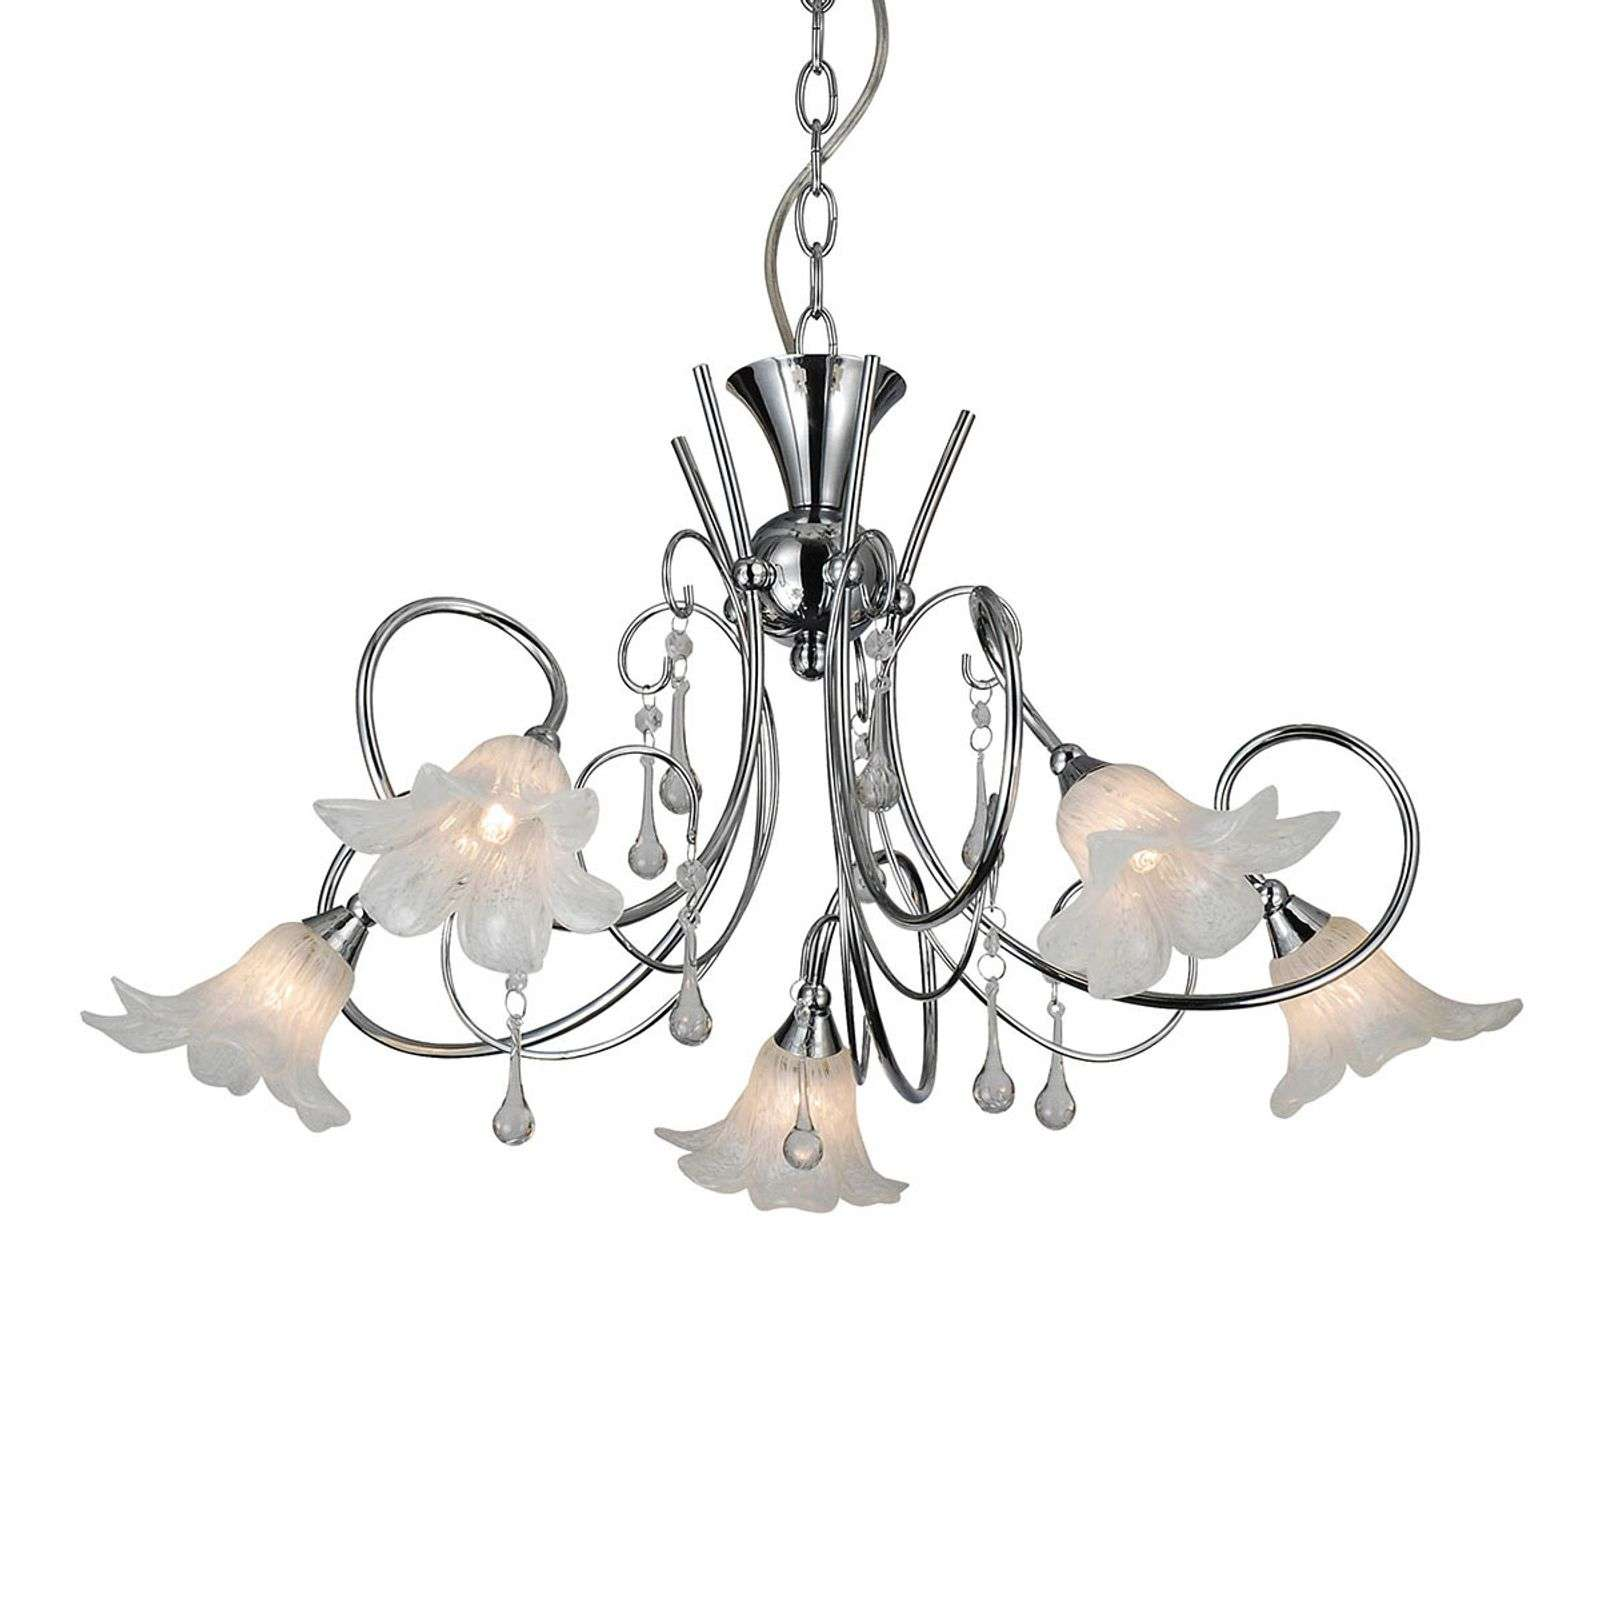 Suspension LED florale Tabor